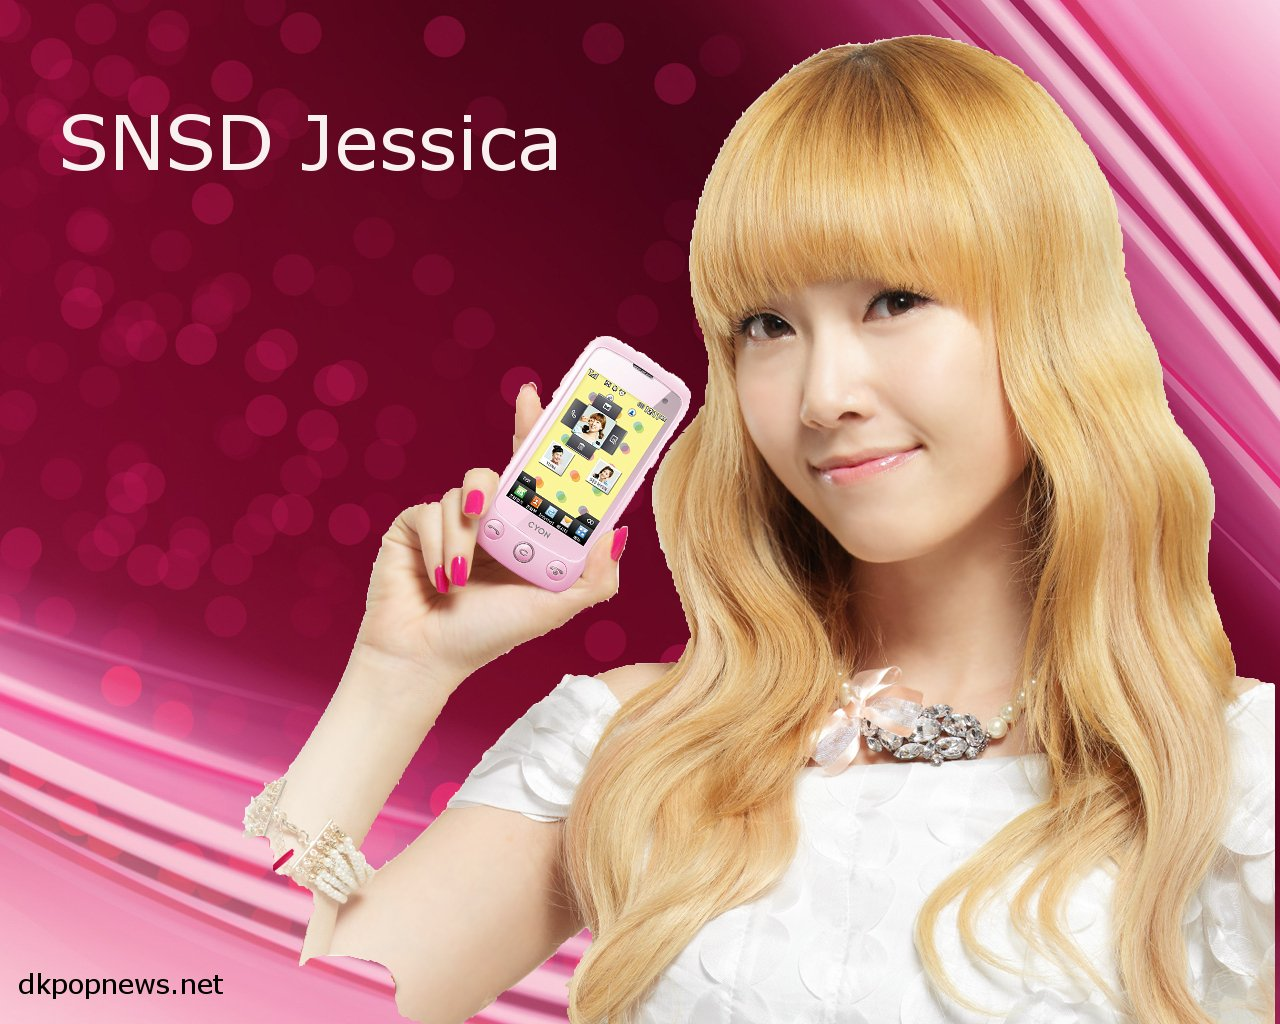 SNSD Jessica LG Cooky